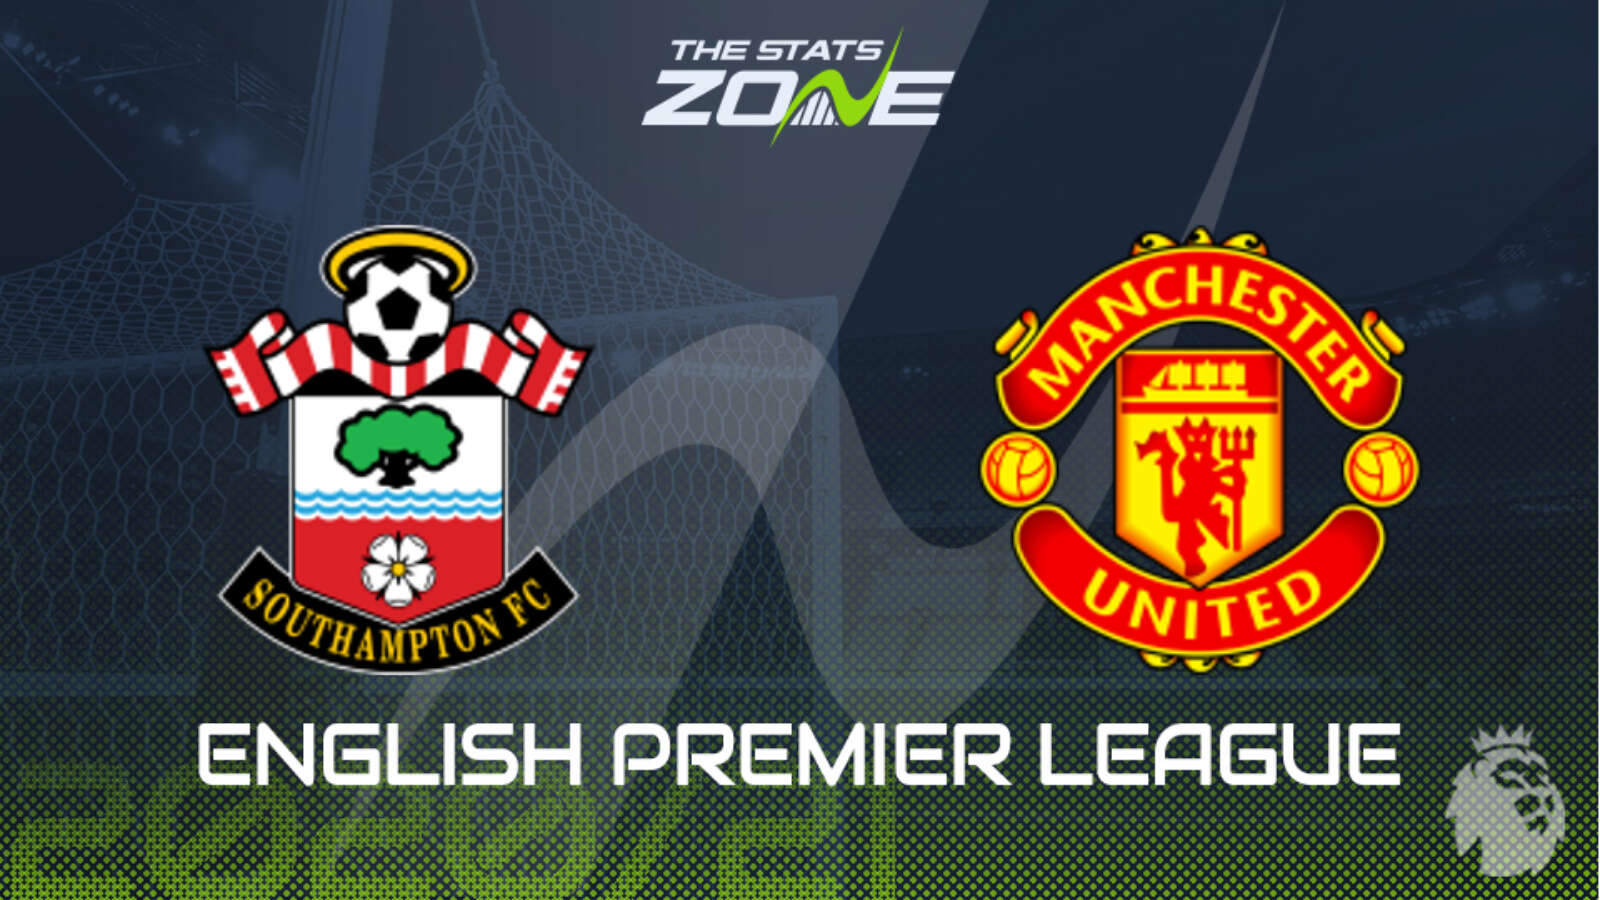 Premier League Matchday: In-form Southampton play Manchester United at the St. Mary's Stadium